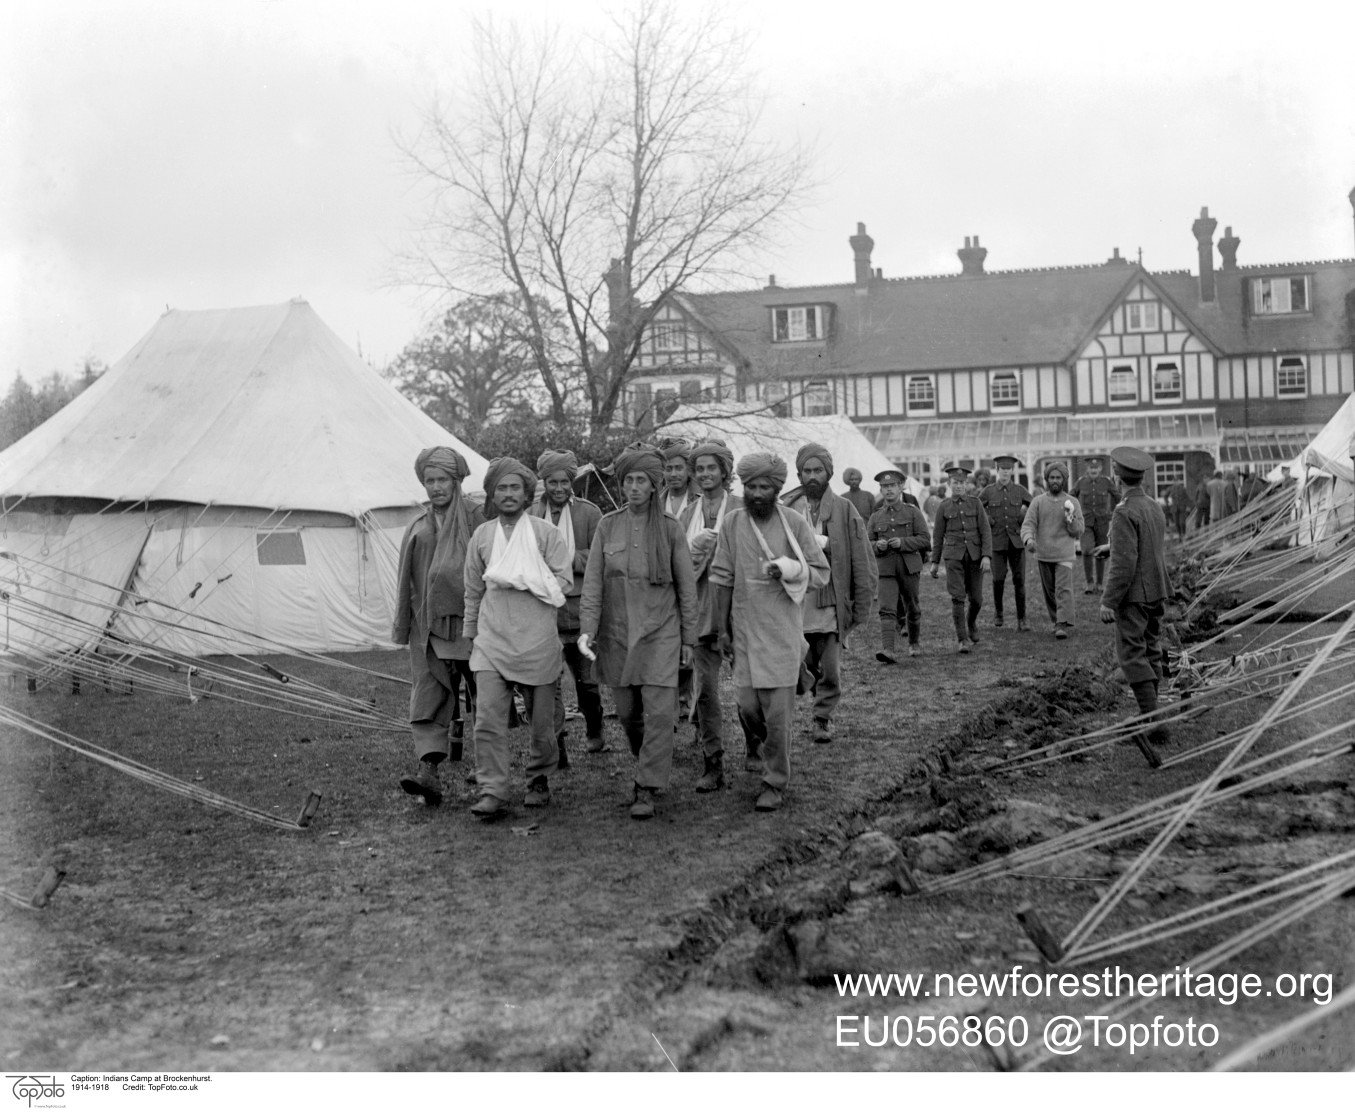 Indian patients returning to tented accommodation in grounds of Forest Park Hotel, The Lady Hardinge Hospital for Wounded Indian Soldiers, Brockenhurst. 1914